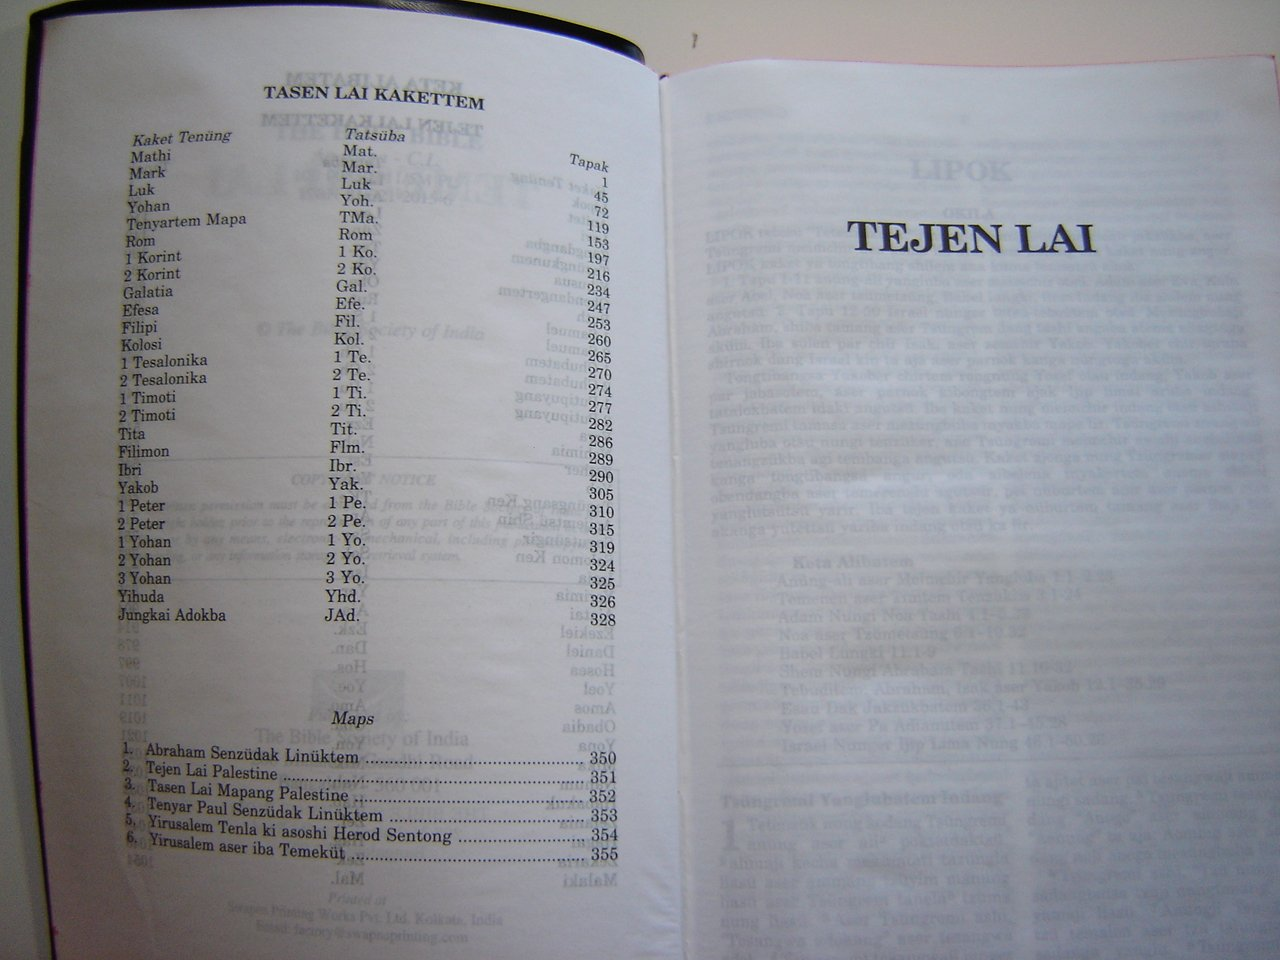 Ao Naga Language Bible / TEMESHI LAI - Tejen Lai - Tasen Lai / C.L.Vinyl Bound / Mongsen Ao is a Tibeto-Burman language spoken by the Ao of Nagaland in ...